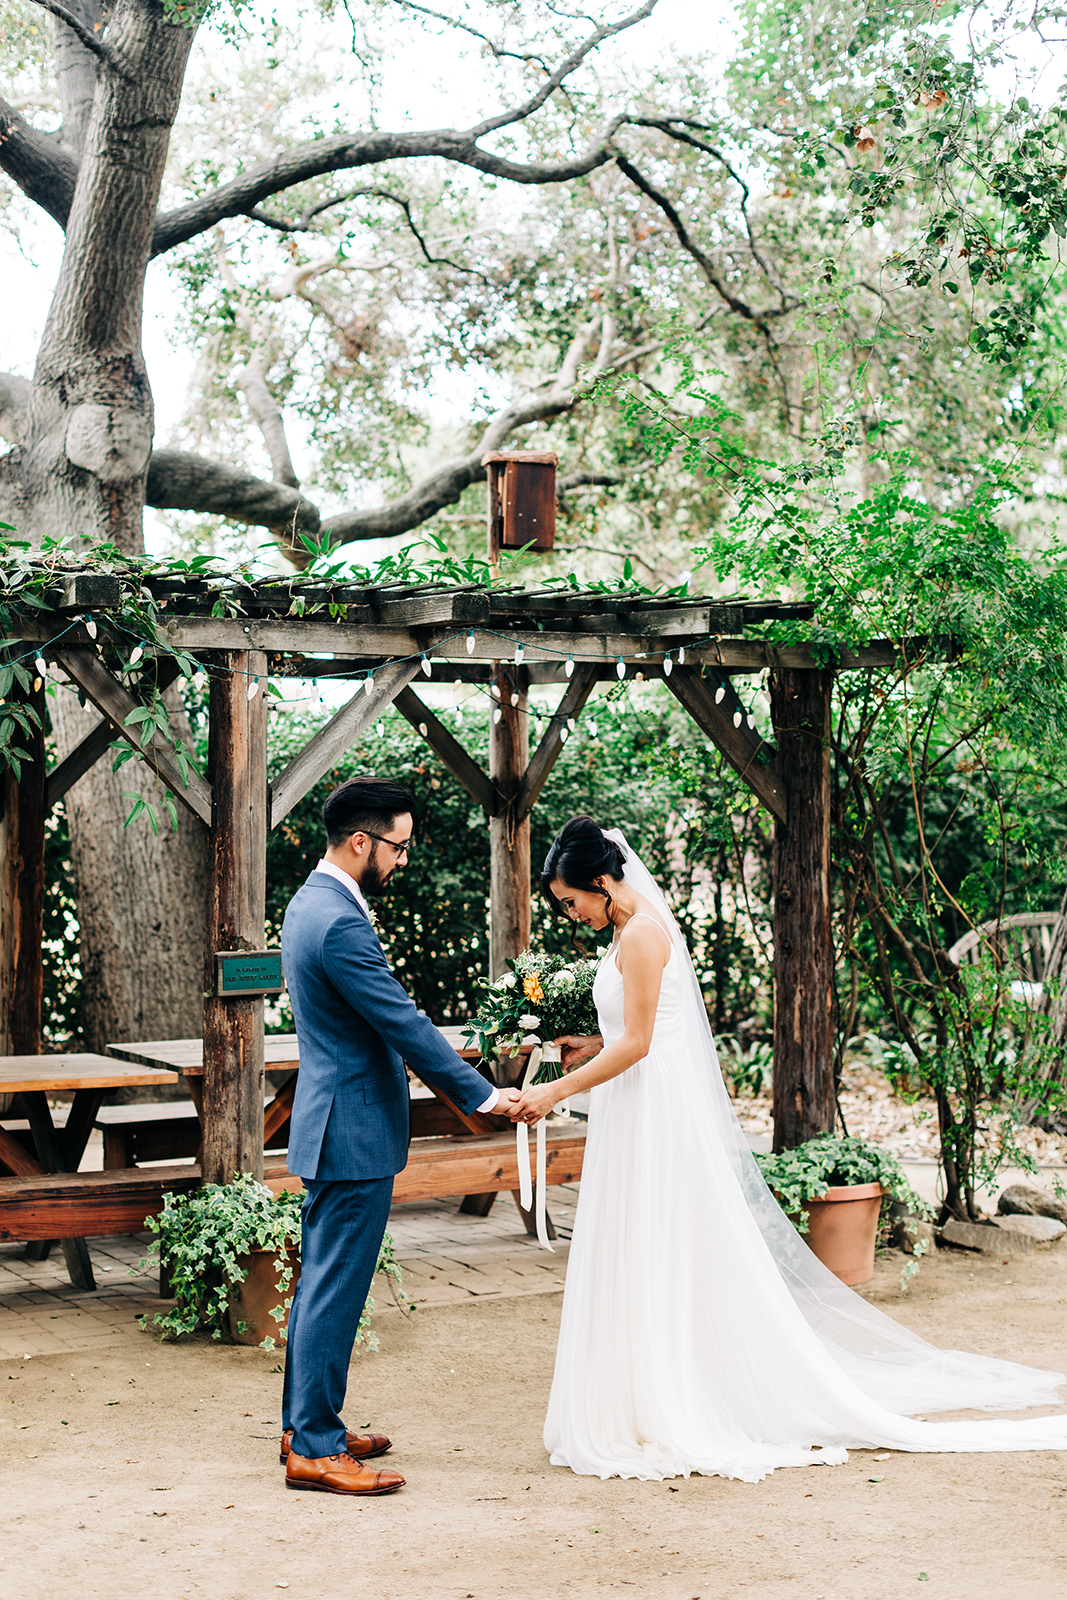 Los-Altos-History-Museum-Wedding_Orange-County-Wedding-Photographer_Clarisse-Rae-Photo-Video_31